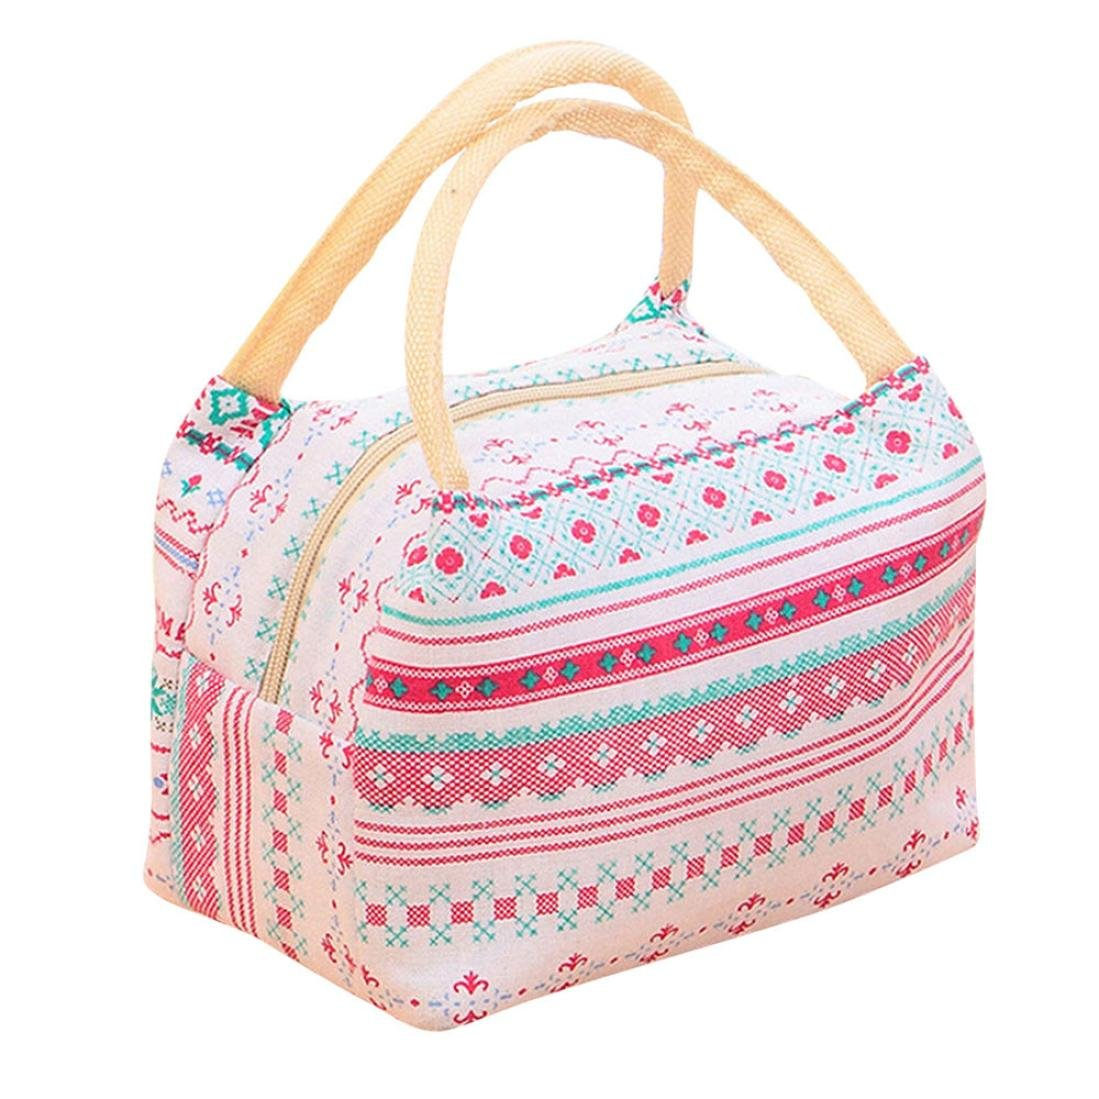 Lunch Bag,Haoricu 2018 Clearance Universal Insulated Canvas Box Tote Bag Thermal Cooler Food Lunch Bags For Women Kids Men (Multicolor 1)